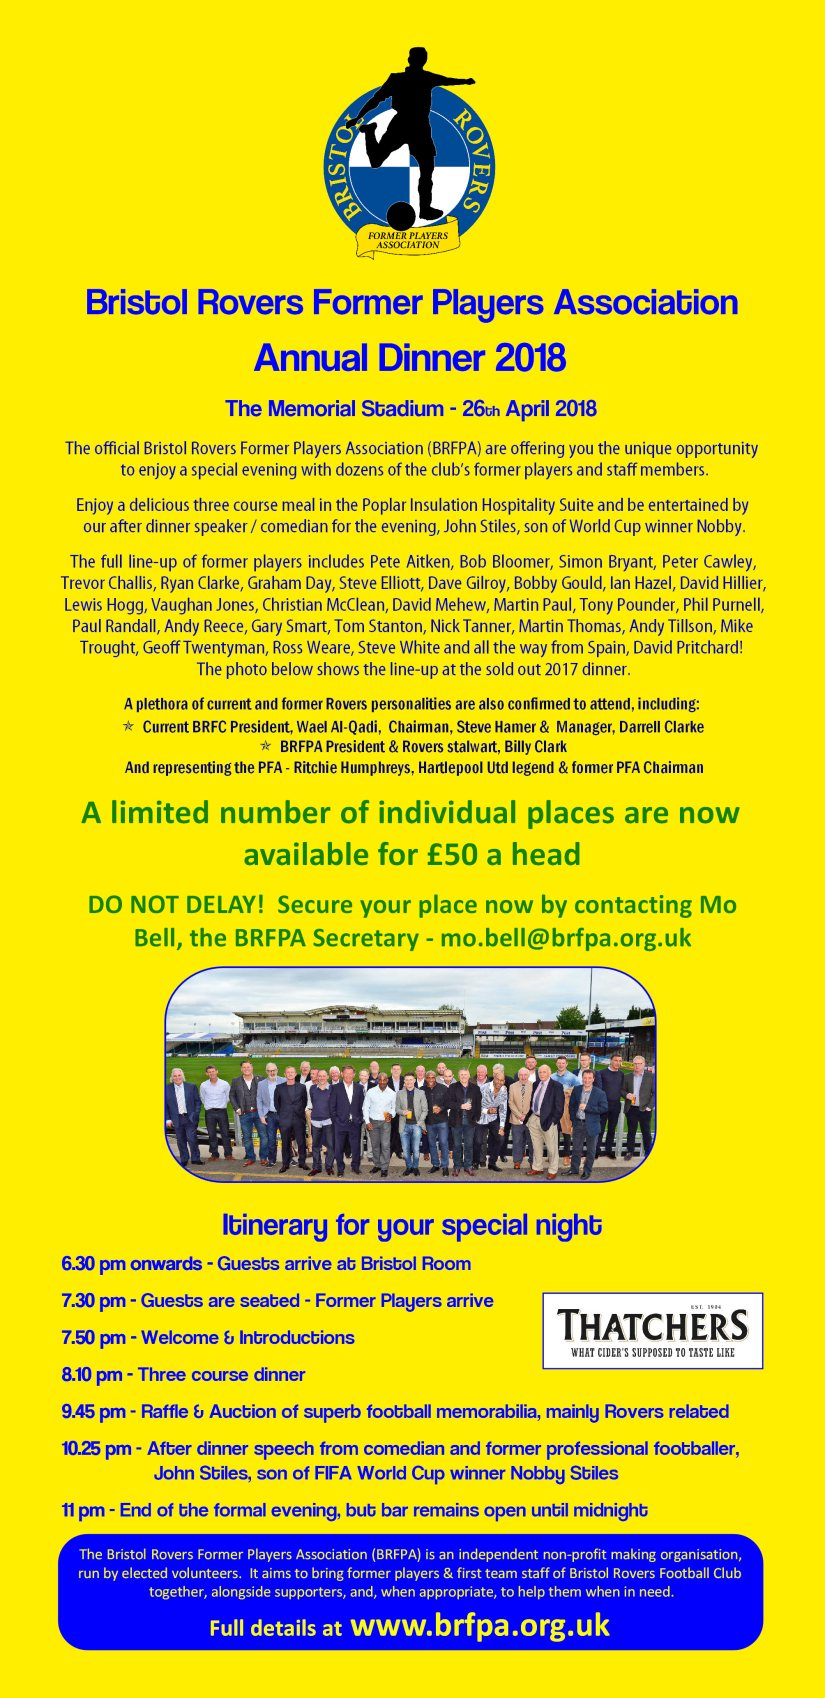 BRFPA Annual Dinner - 2018 - How to Book your place